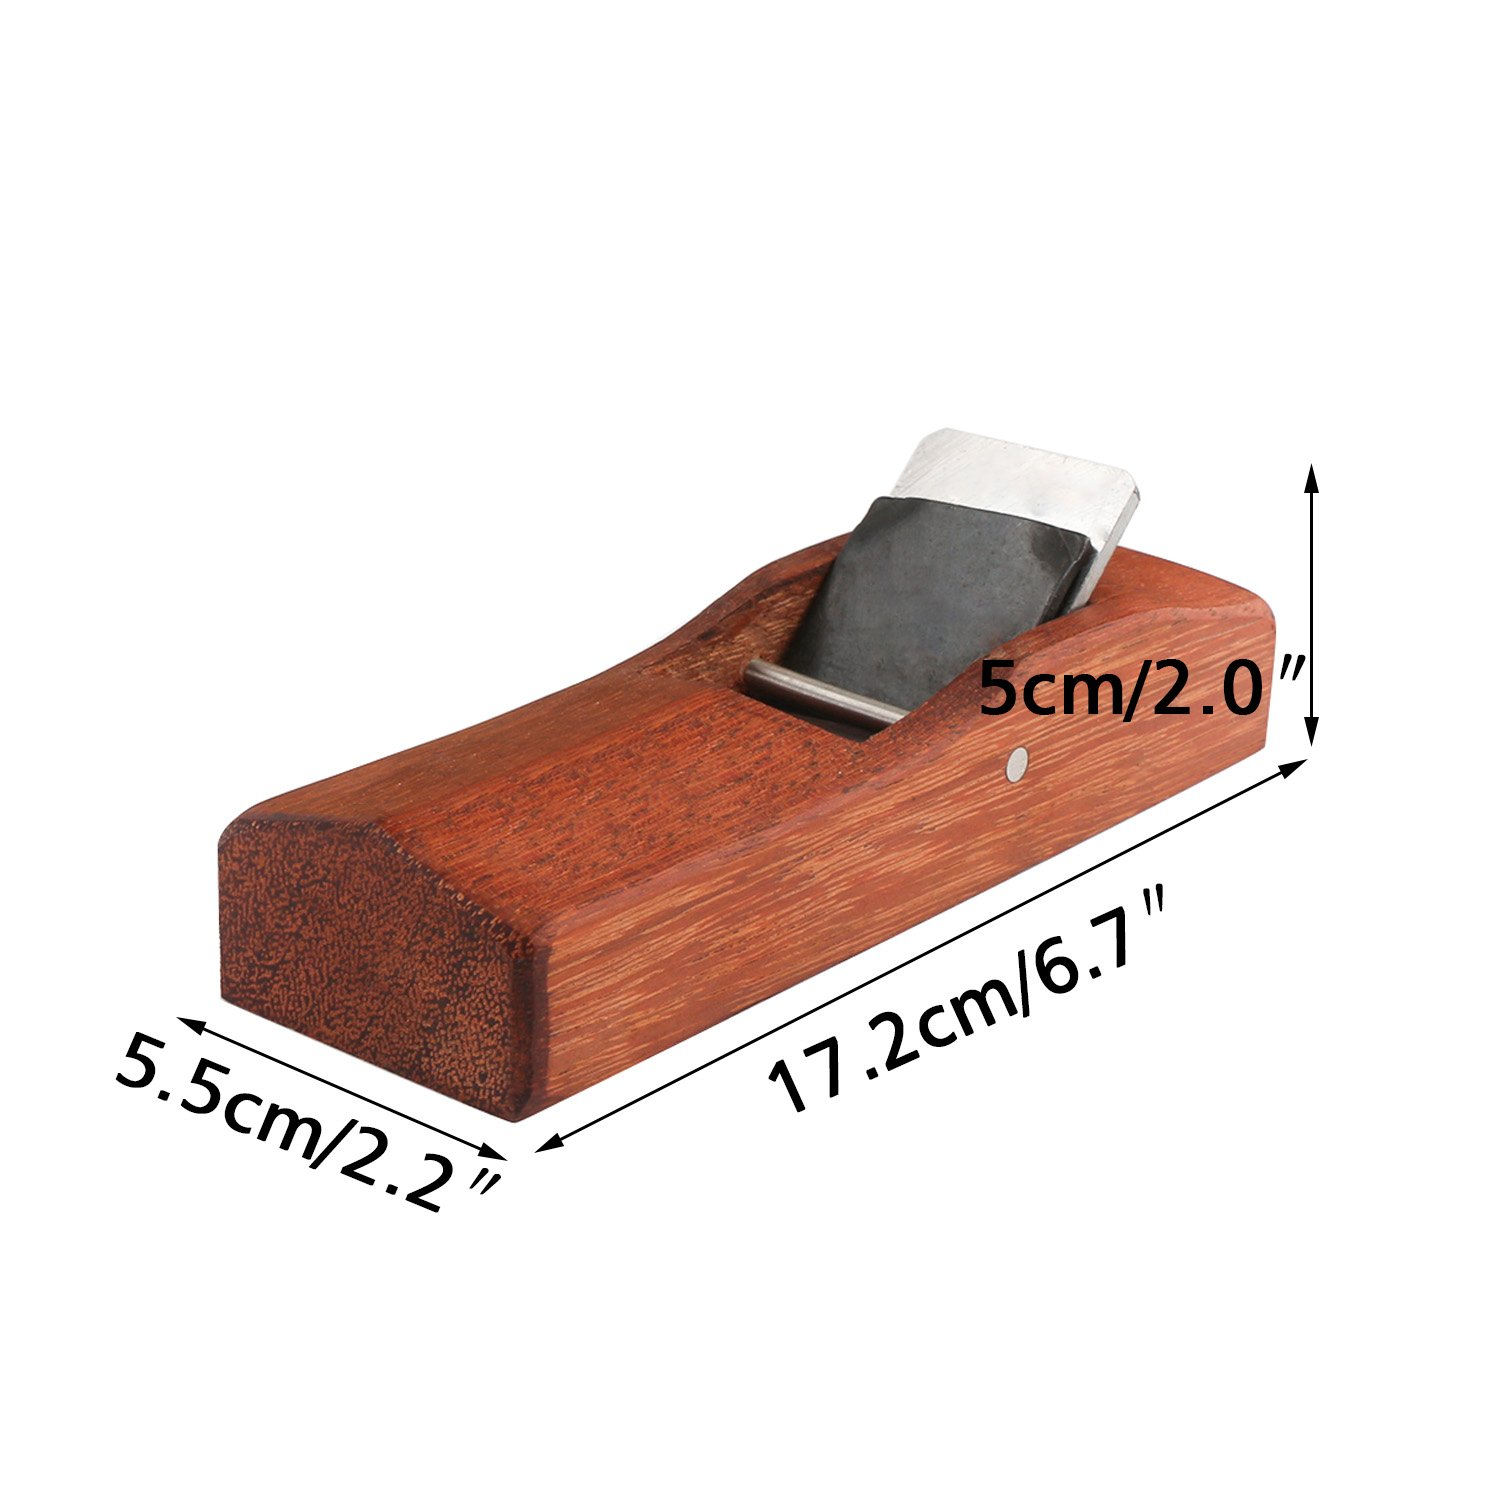 EnPoint™ Woodwork Japanese KANNA Adjustable Block Plane 55MMx 172MM Streamline Hand Planer Bench Plane Flat Base Double Edge Smooth Surface Carpenter Tool for Woodworker Table Chair Seat Leg by EnPoint (Image #2)